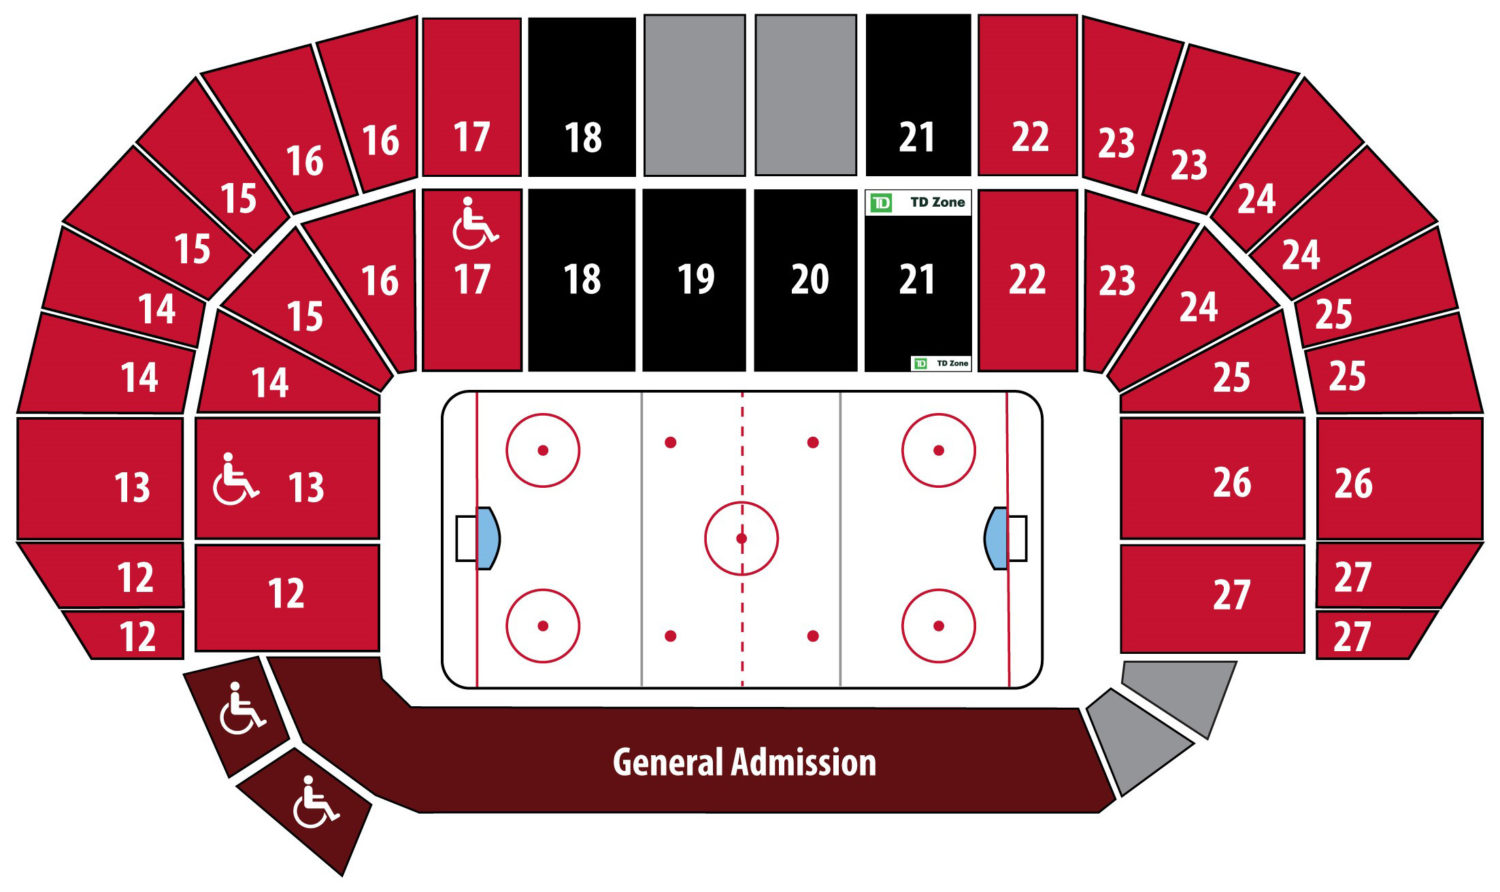 Season Ticket seating chart